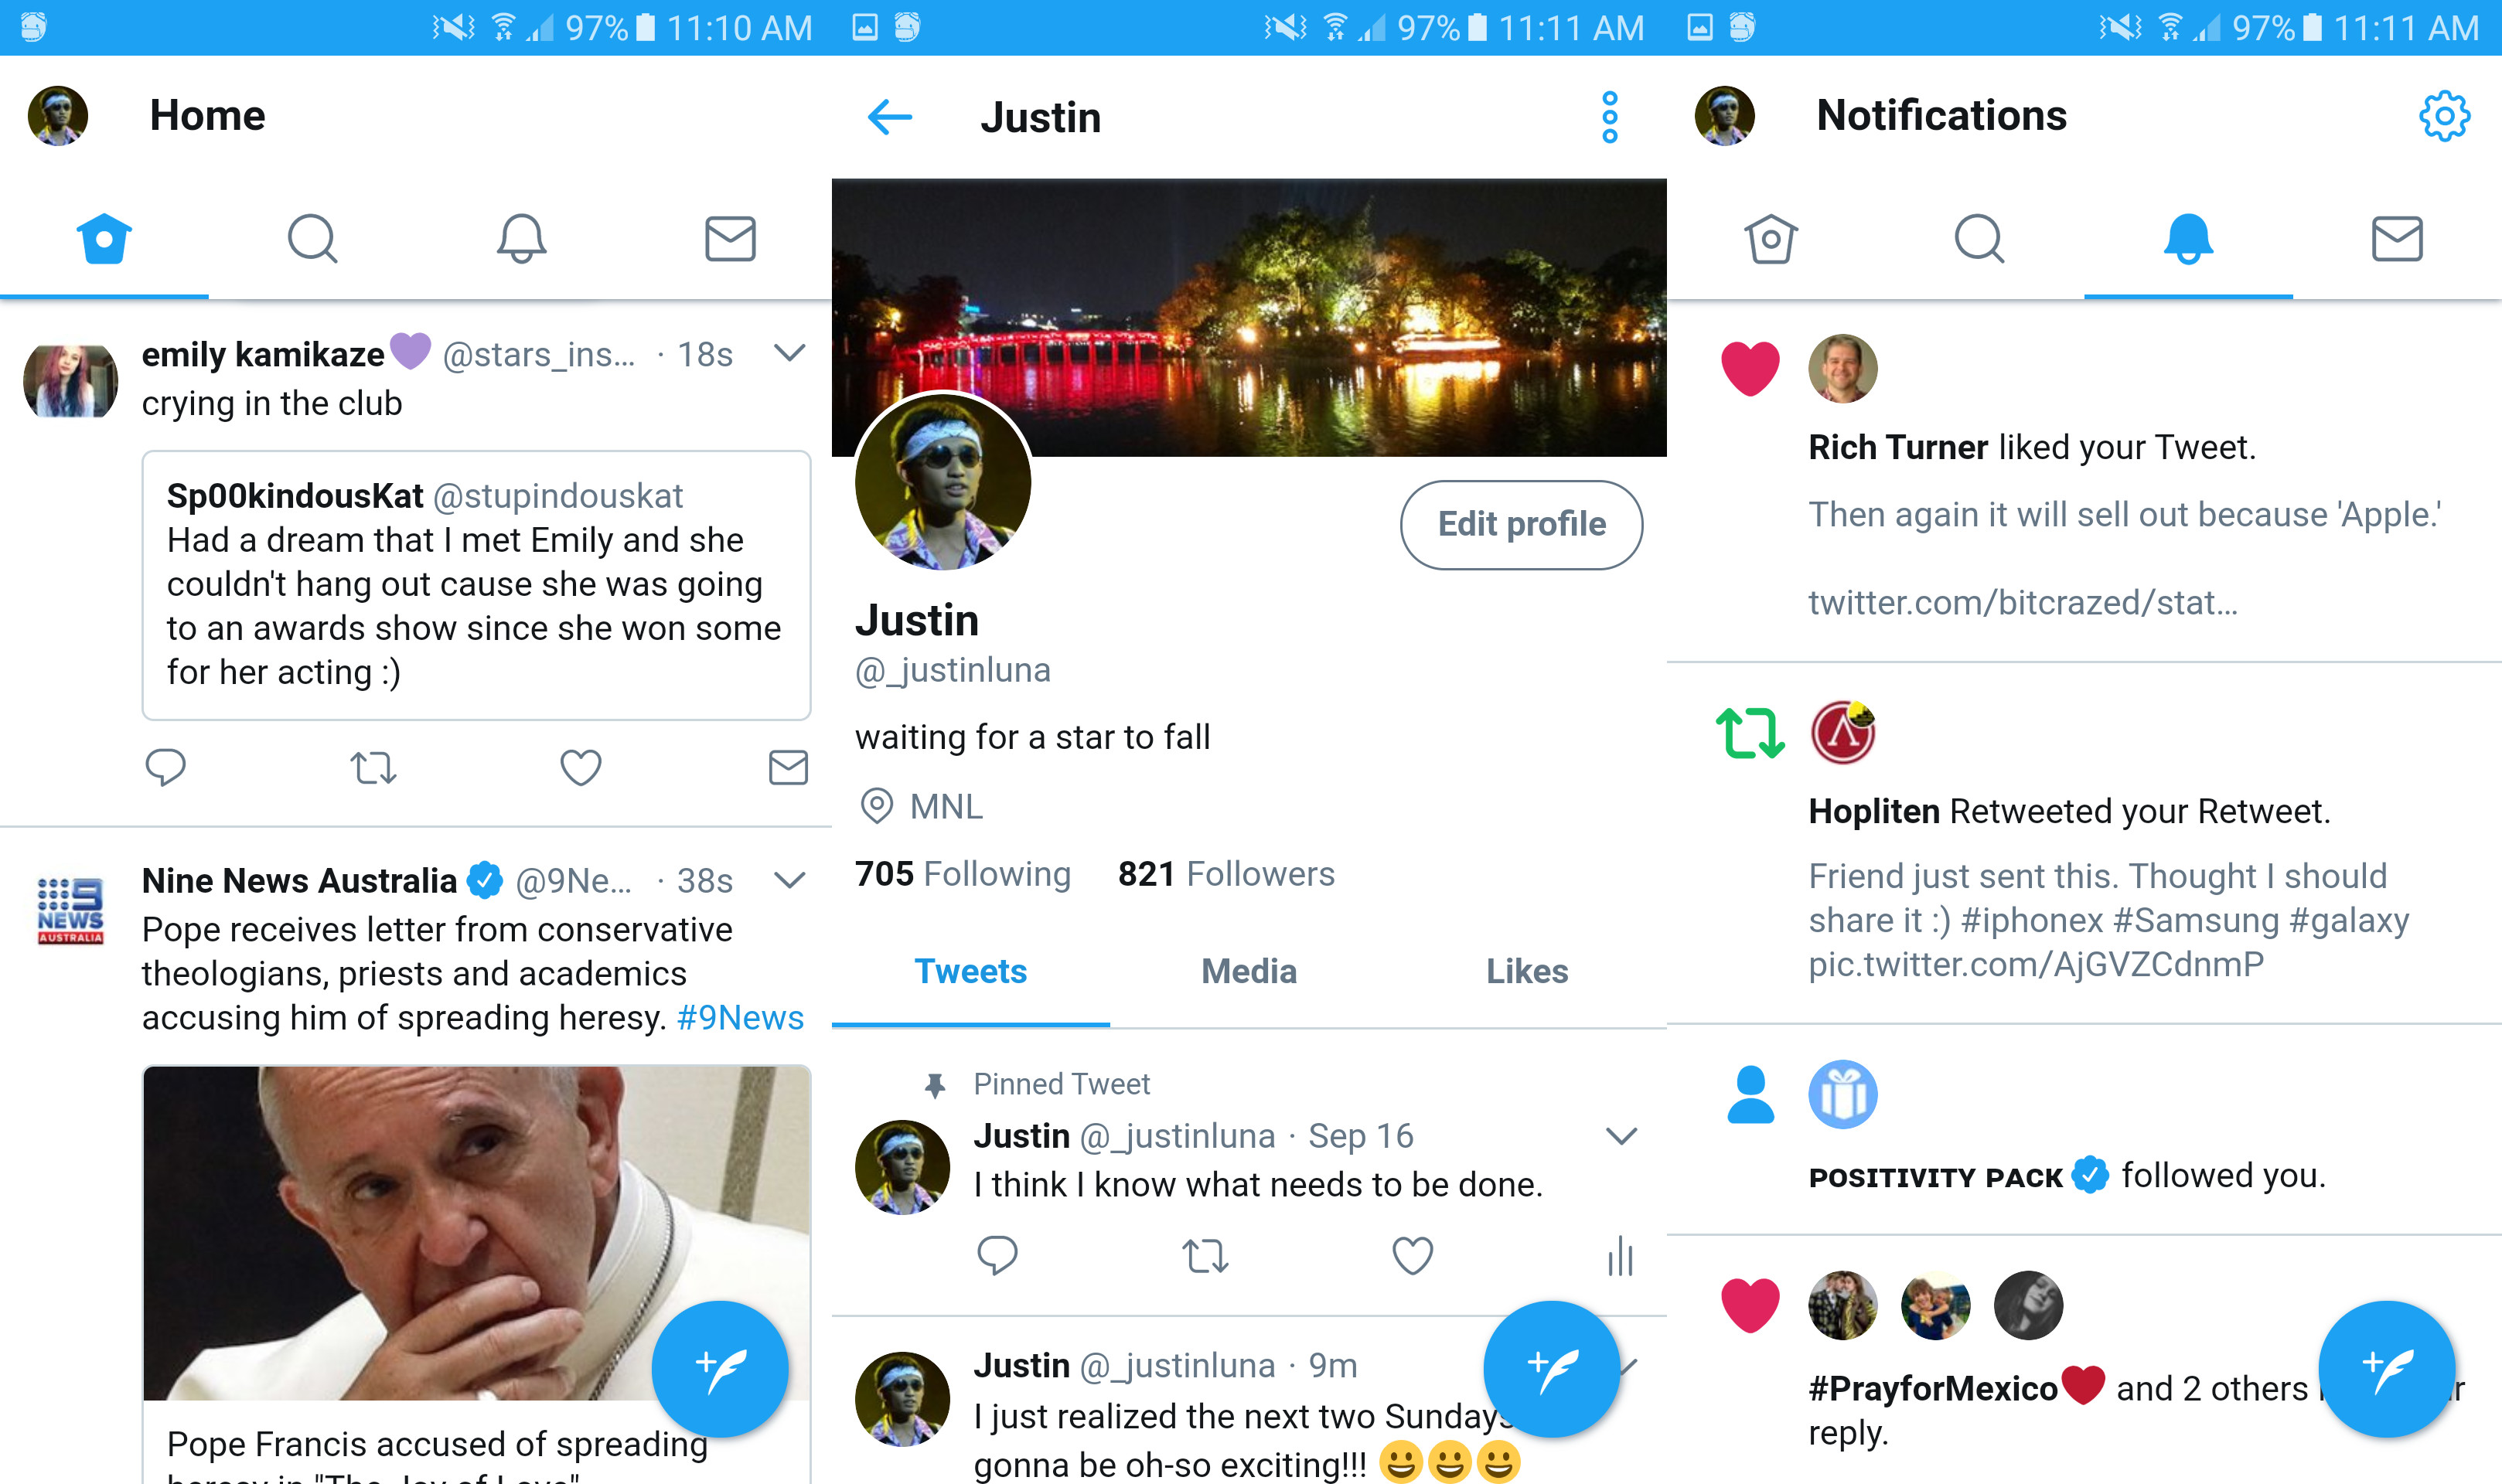 Twitter Lite Android App Goes Live in Philippines